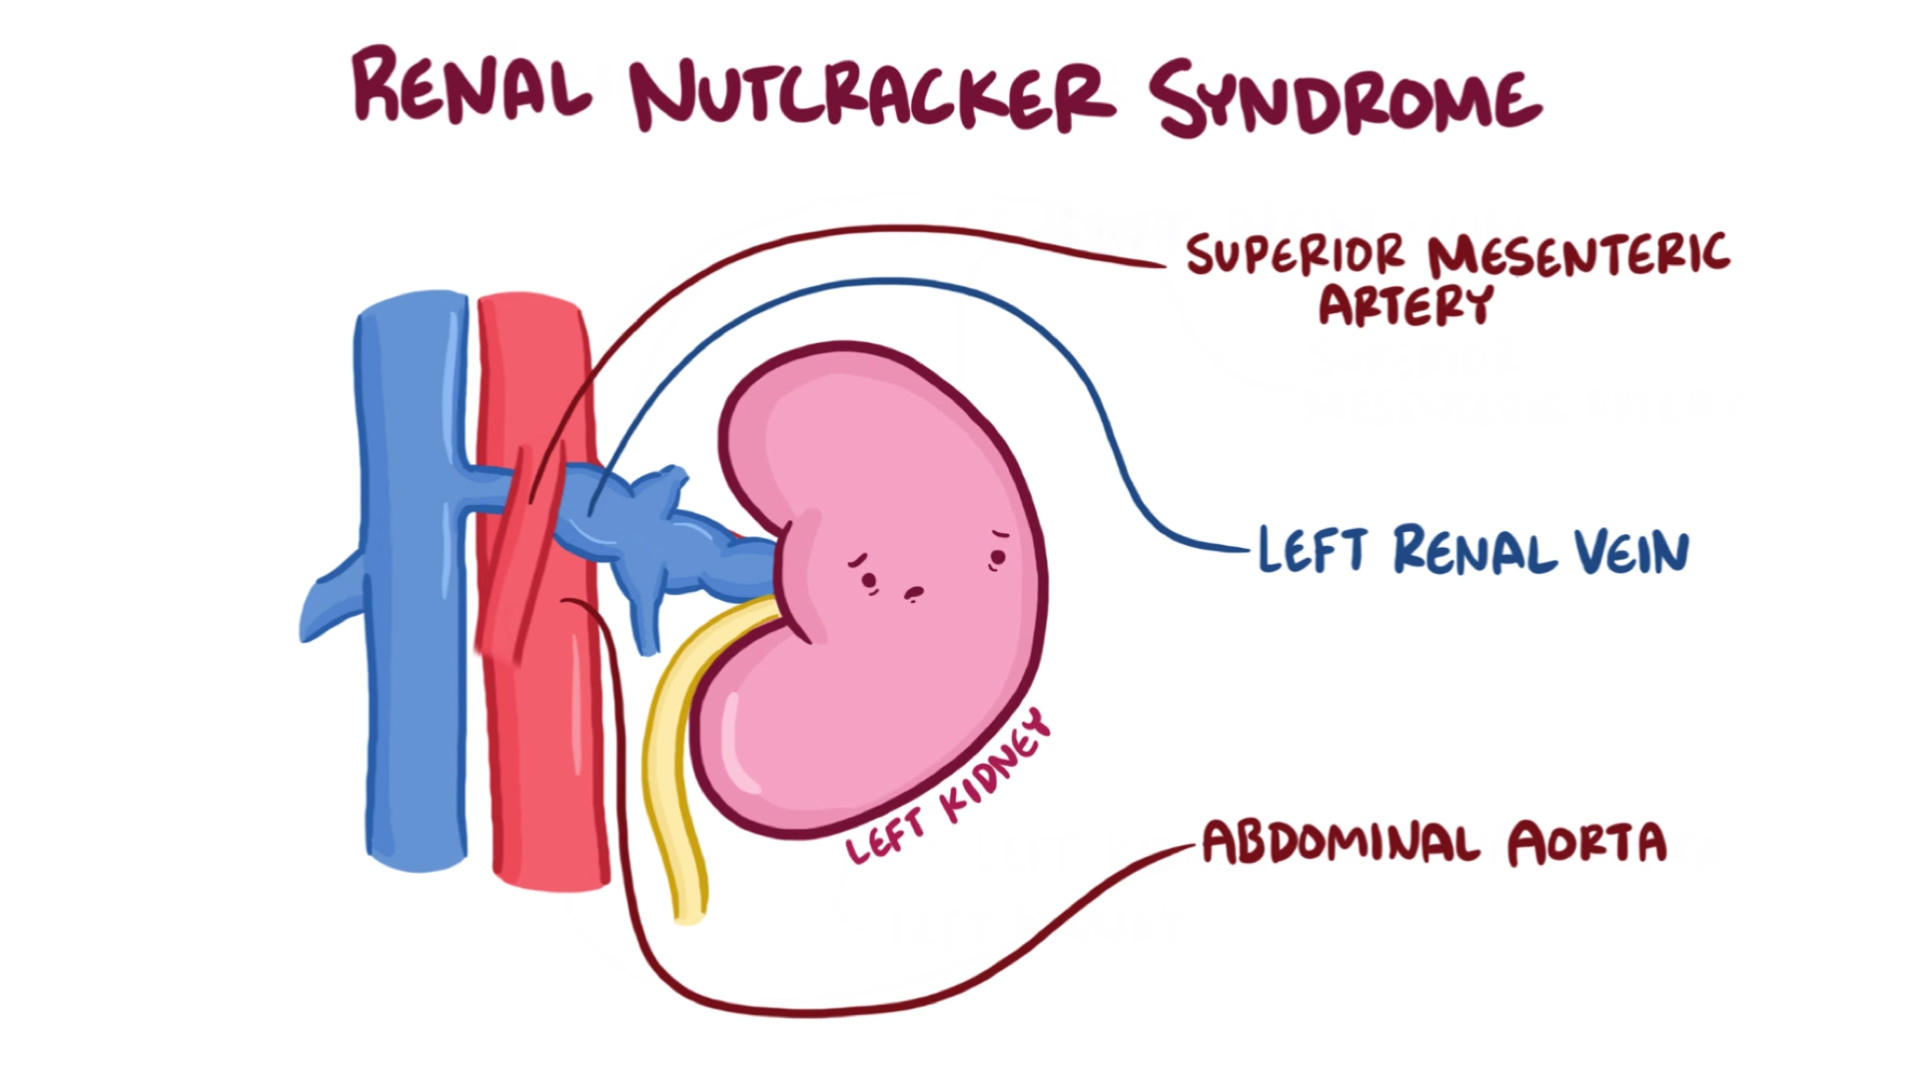 renal nutcracker syndrome